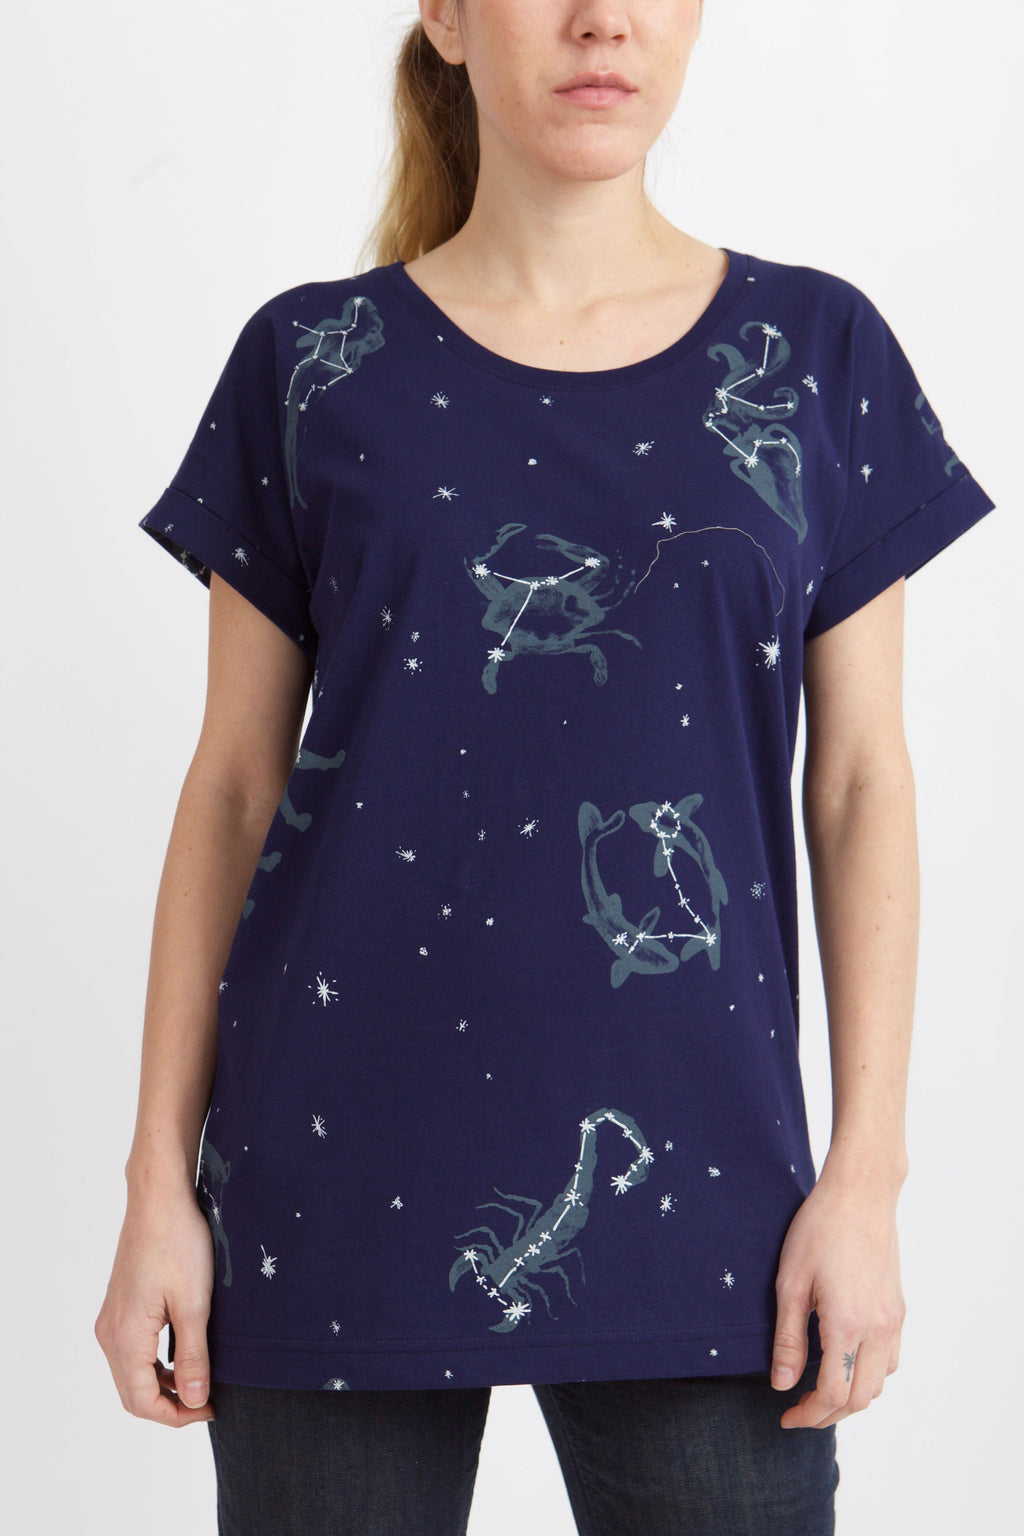 women wears blue shirt with cuffed sleeves, zodiac symbols and star details all  over the shirt